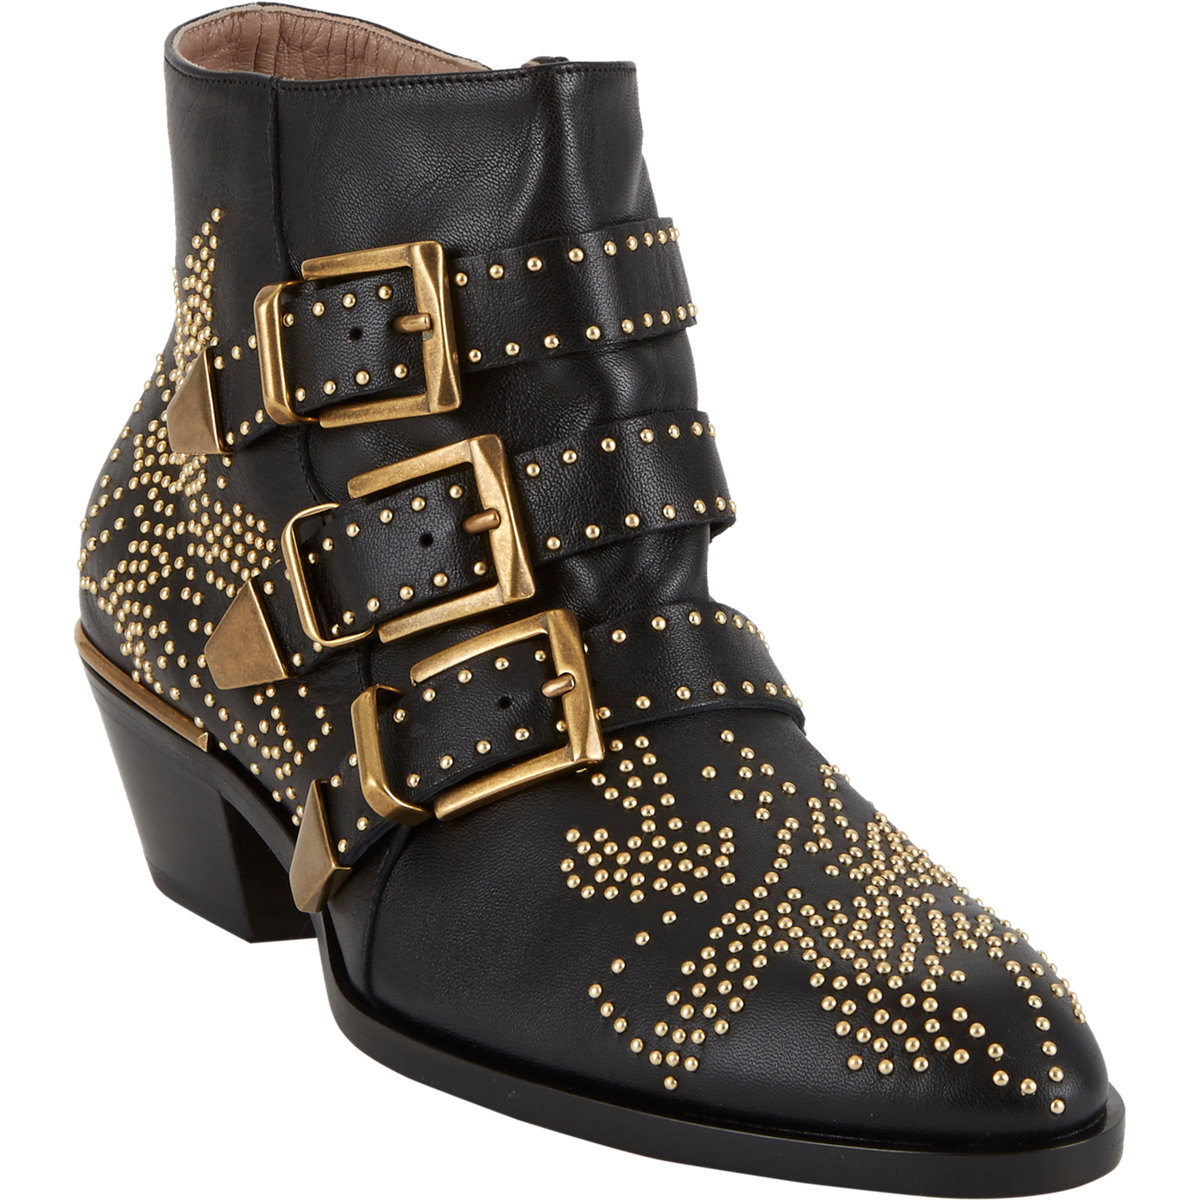 Chloé Suzanna Studded Ankle Boots at Barneys.com